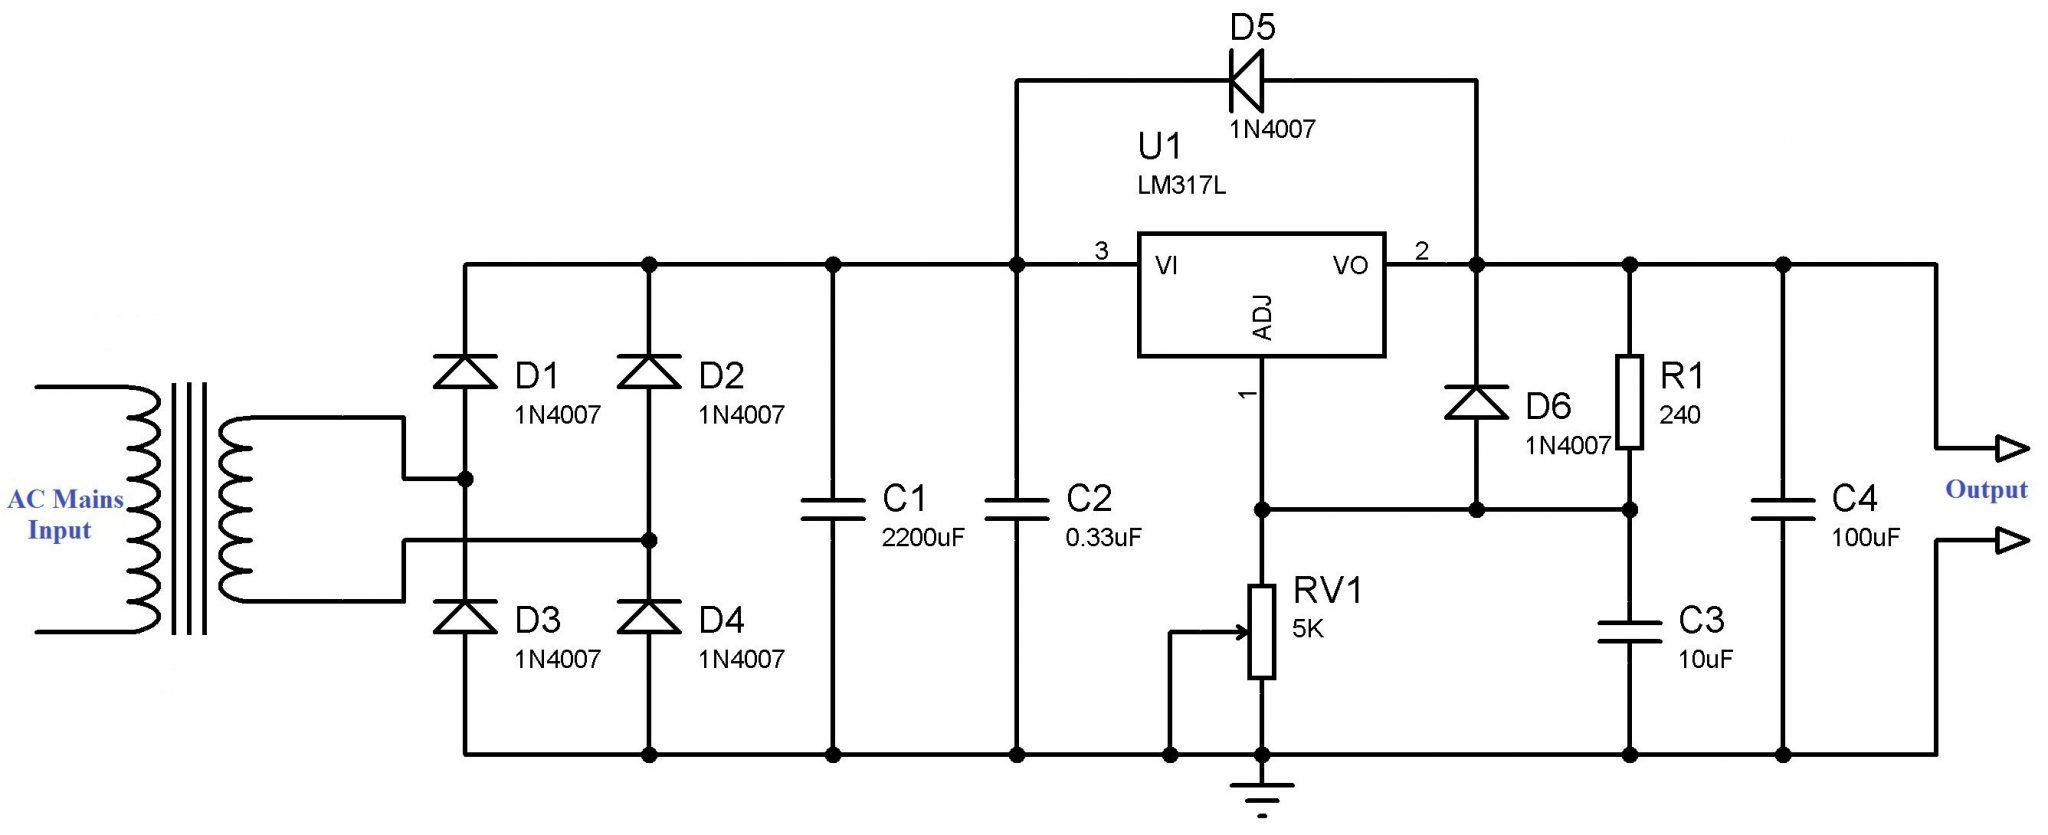 variable power supply using lm317 voltage regulatorcomplete circuit diagram variable power supply using lm317